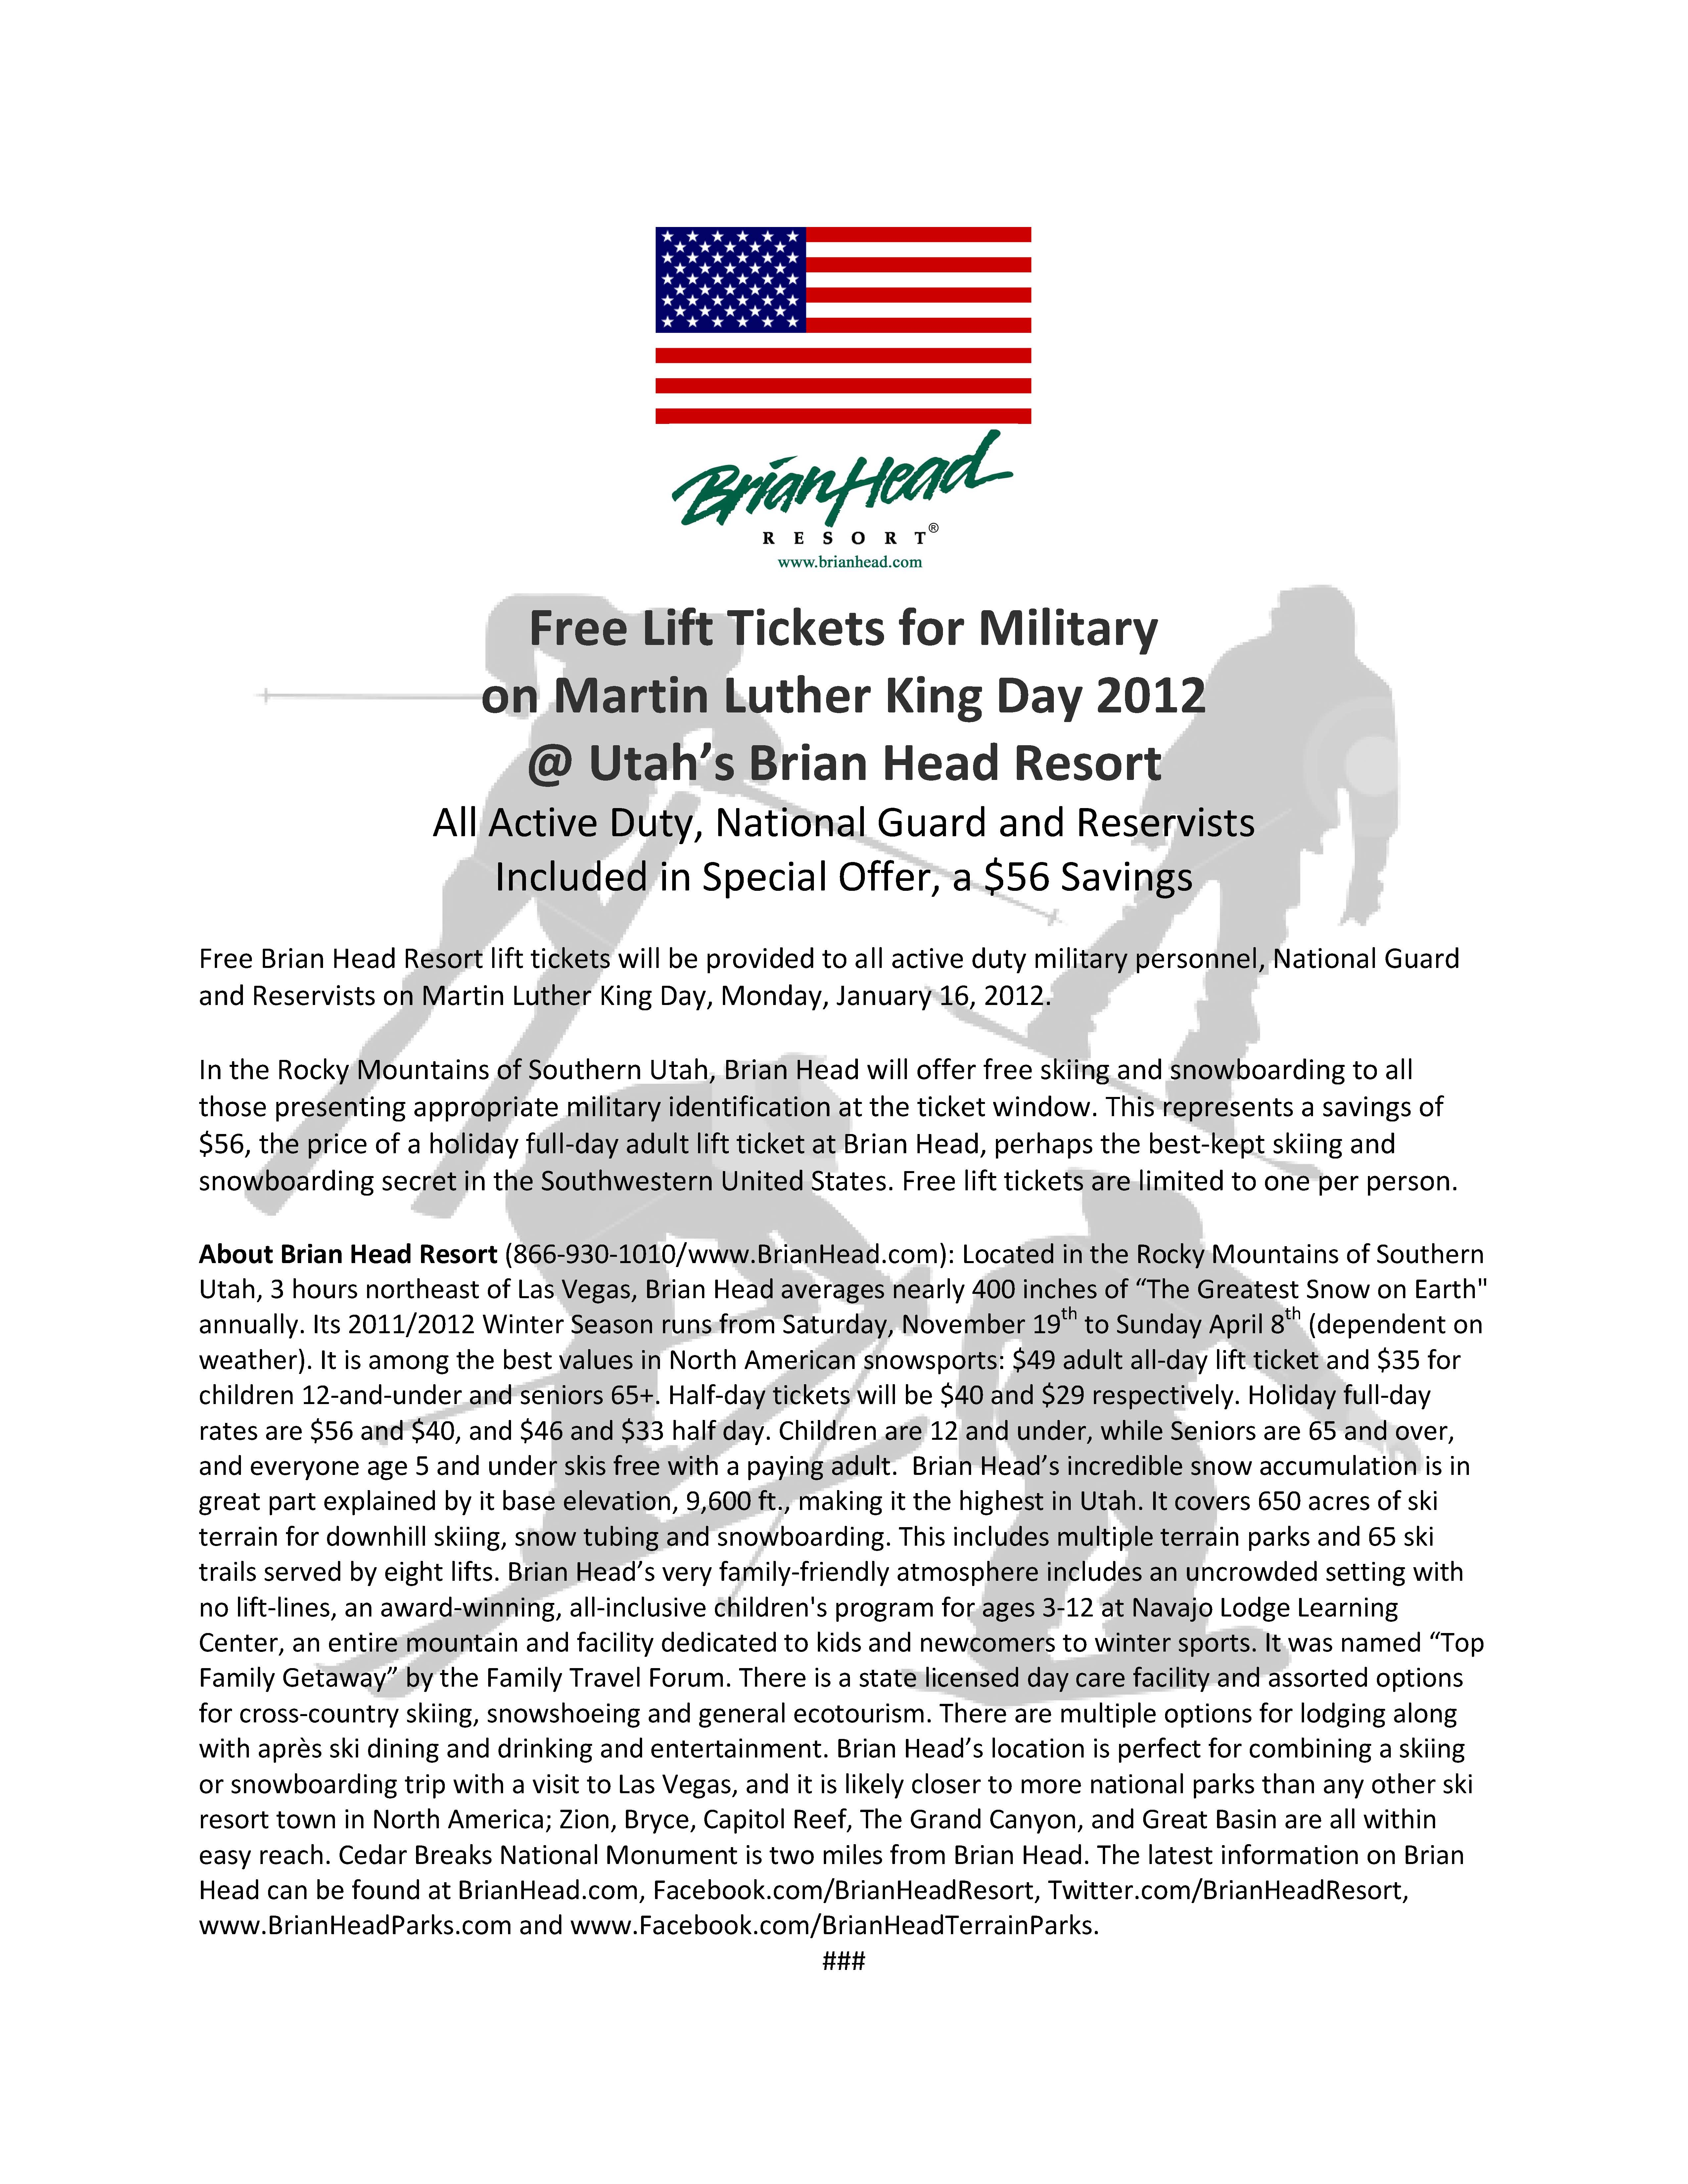 BHR 2012 Military Offered Free Lift Tickets on MLK DAY Flier.jpg